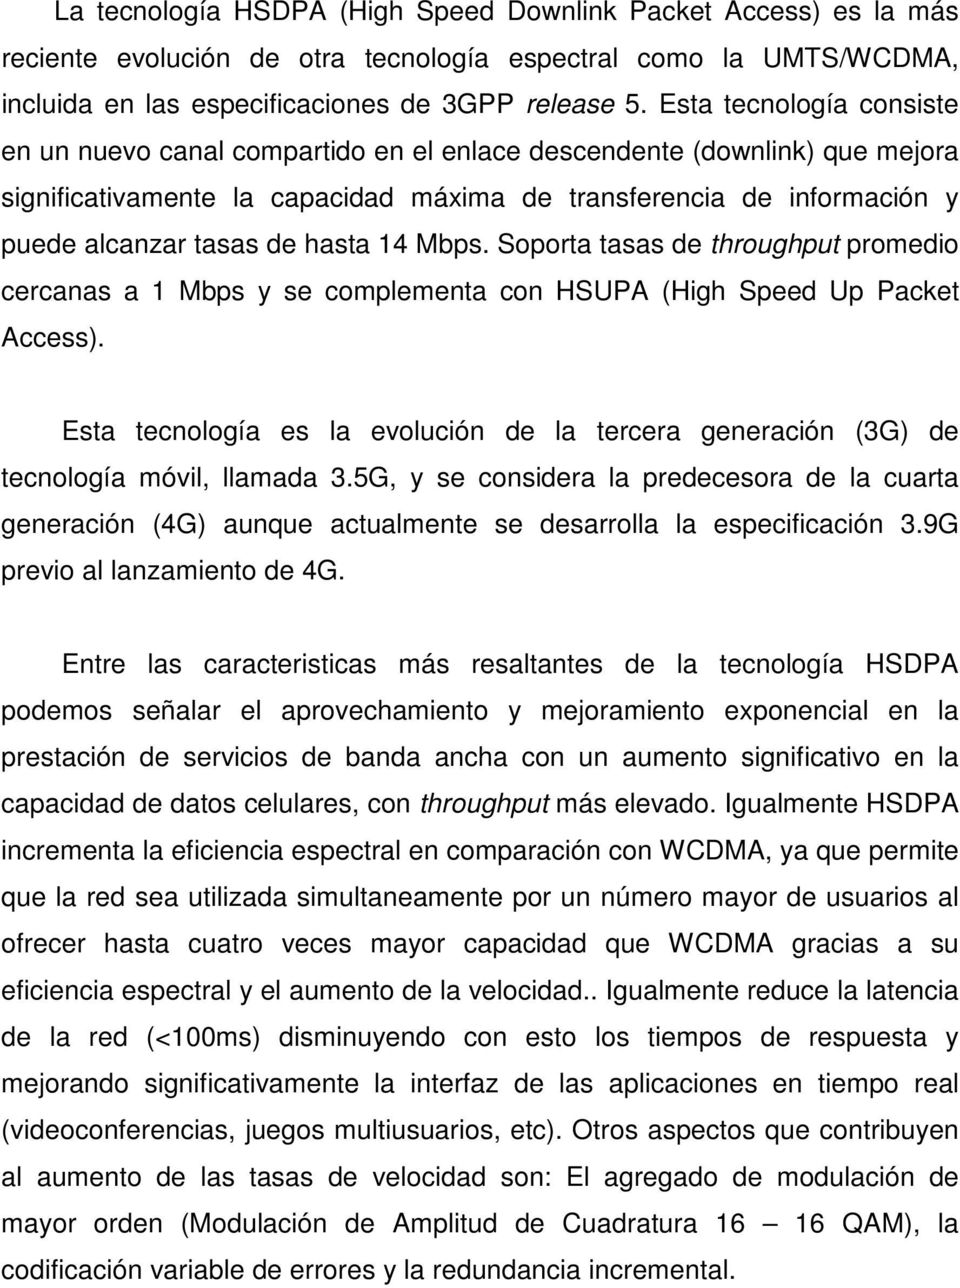 hasta 14 Mbps. Soporta tasas de throughput promedio cercanas a 1 Mbps y se complementa con HSUPA (High Speed Up Packet Access).